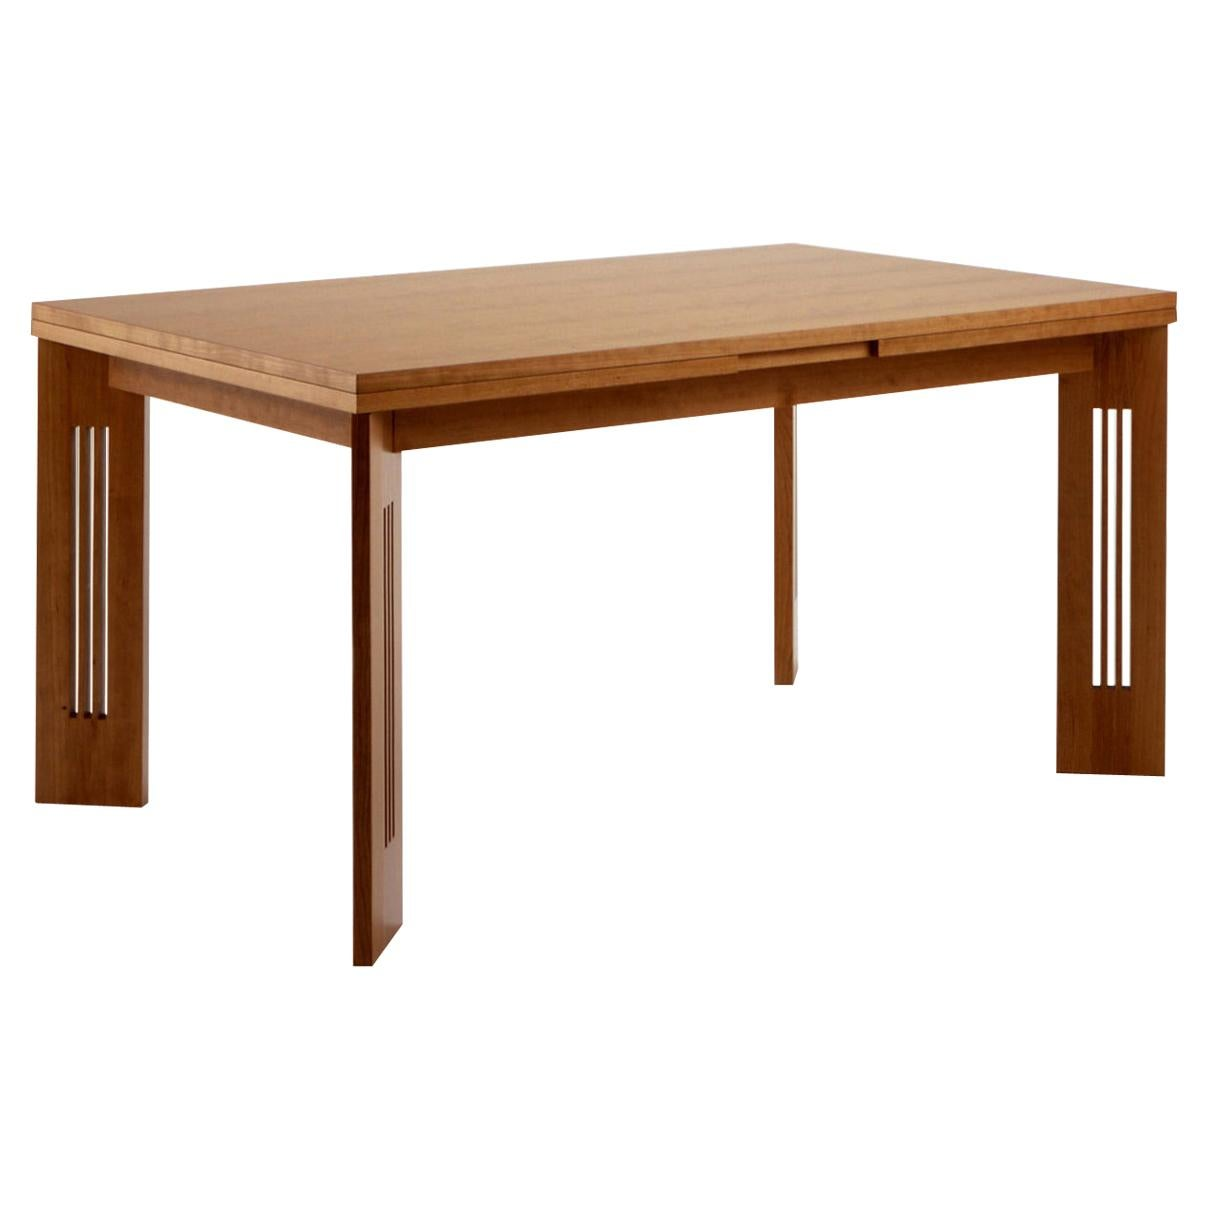 Charles Rennie Mackintosh 320 Berlino Extendable Table by Cassina